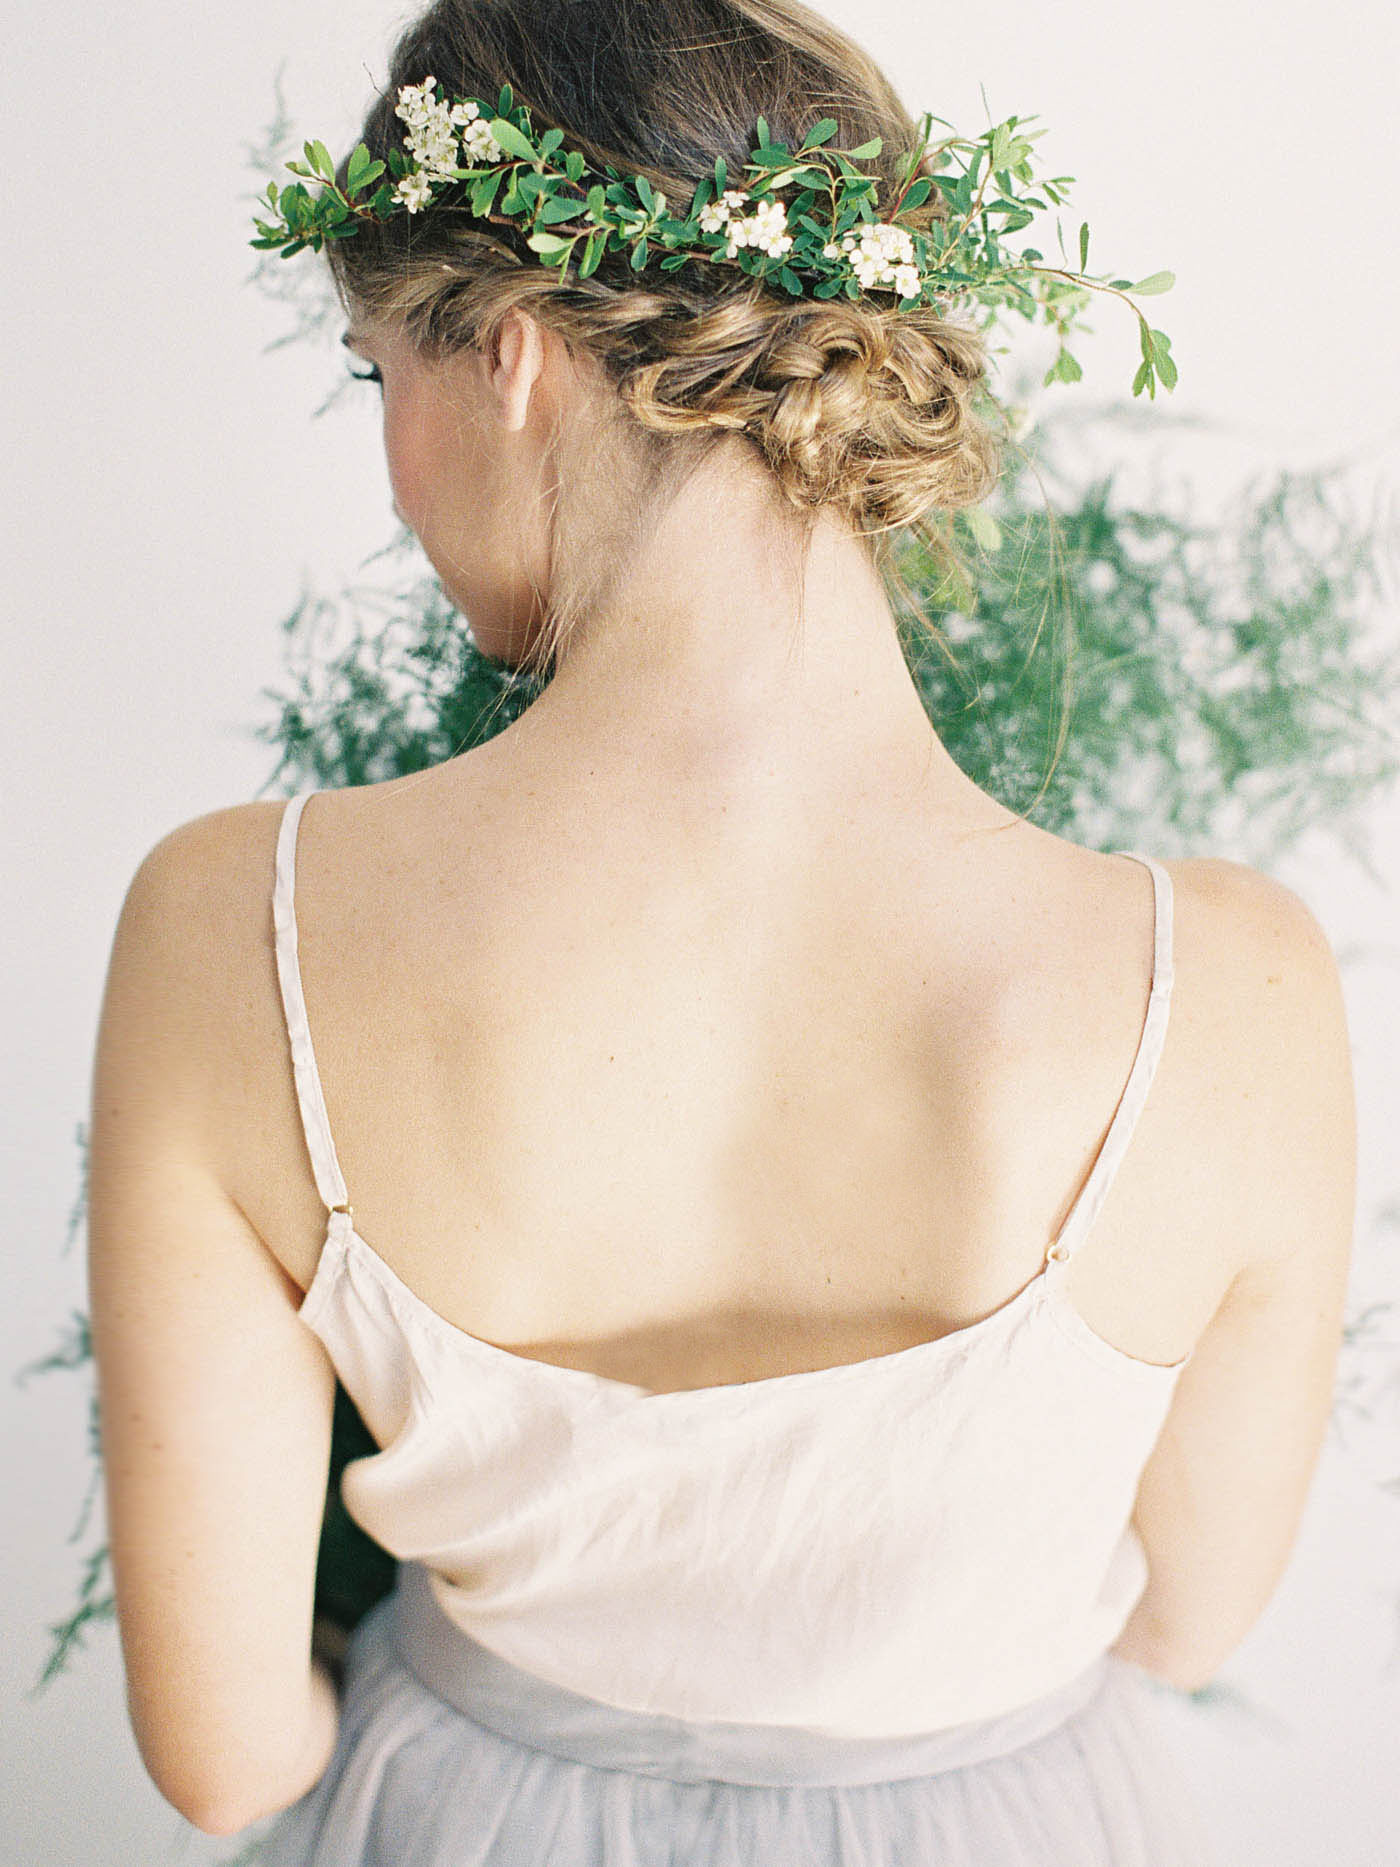 10 FLORAL CROWN IDEAS with Poppies and Posies